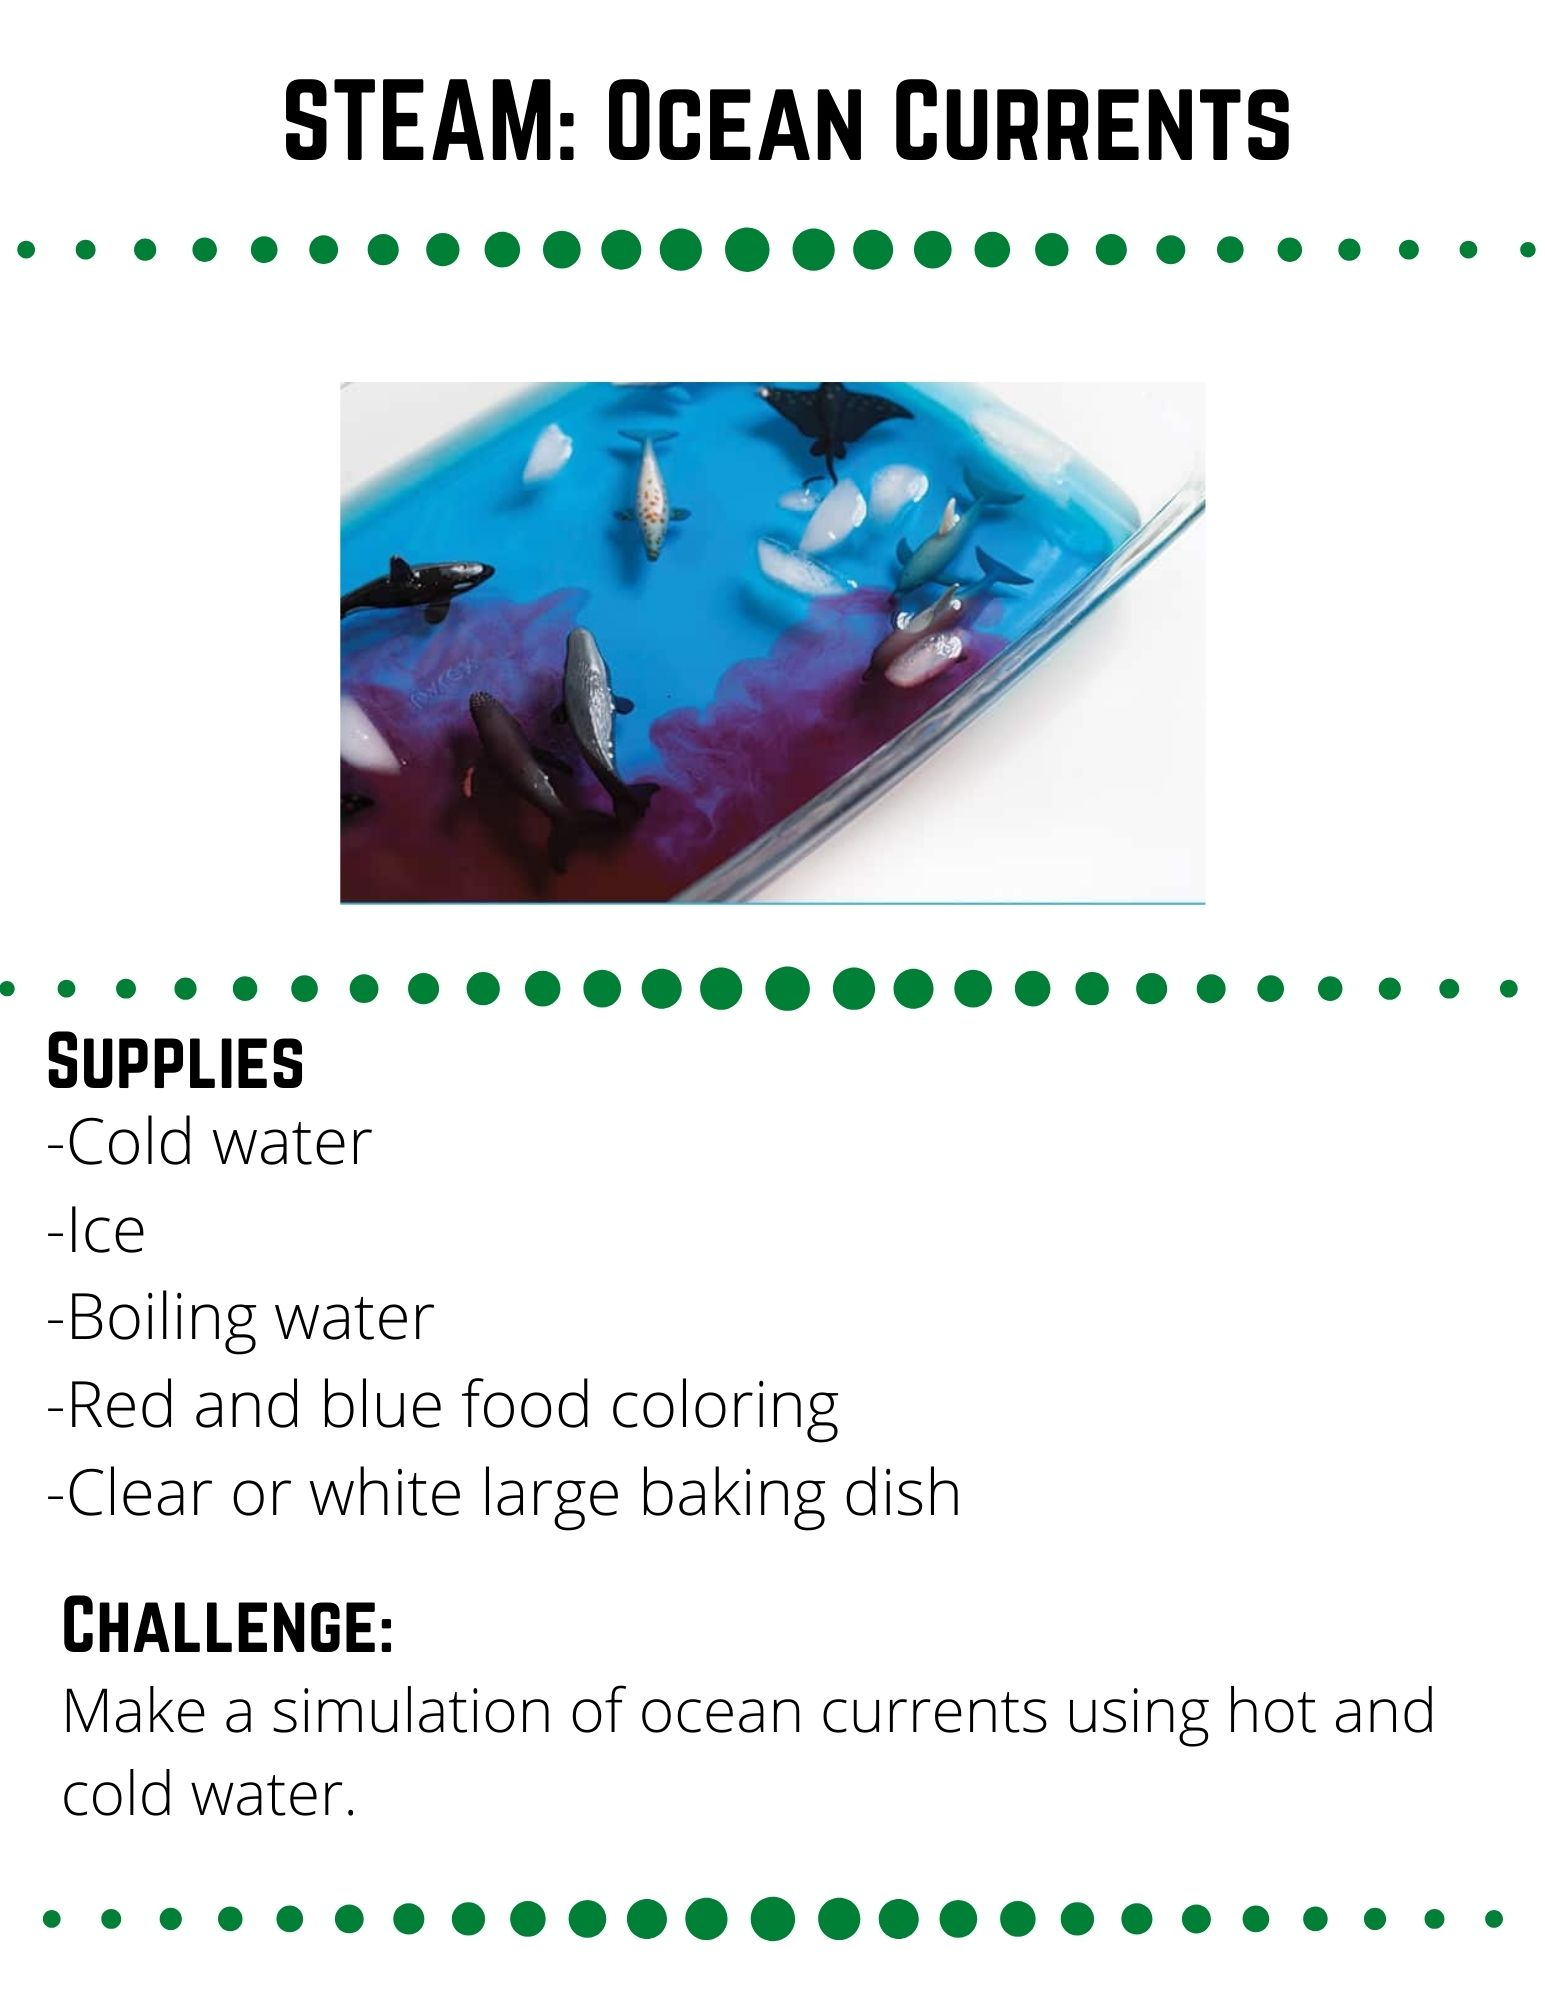 STEAM: Ocean Currents. Supplies: -Cold water -Ice -Boiling water -Red and blue food coloring -Clear or white large baking dish. Make a simulation of ocean currents using hot and cold water.Fill the clear baking dish about 1/3 full with cold water and add a few drops of blue food coloring. You won't want the blue to be too dark or you won't be able to see the currents forming.  Add 1-2 cups of ice to the cold water and stir. Let it set for a few minutes for some of the ice to melt. You want to make sure the water is very cold.  Luke warm water will not work.  Boil about 4 cups of water. Add red food coloring to the boiled water, make the red color pretty dark. Once both sets of water & dye are ready, gently pour some of the boiling water into a corner of the baking dish filled with cold water.  Watch as currents form before your eyes!